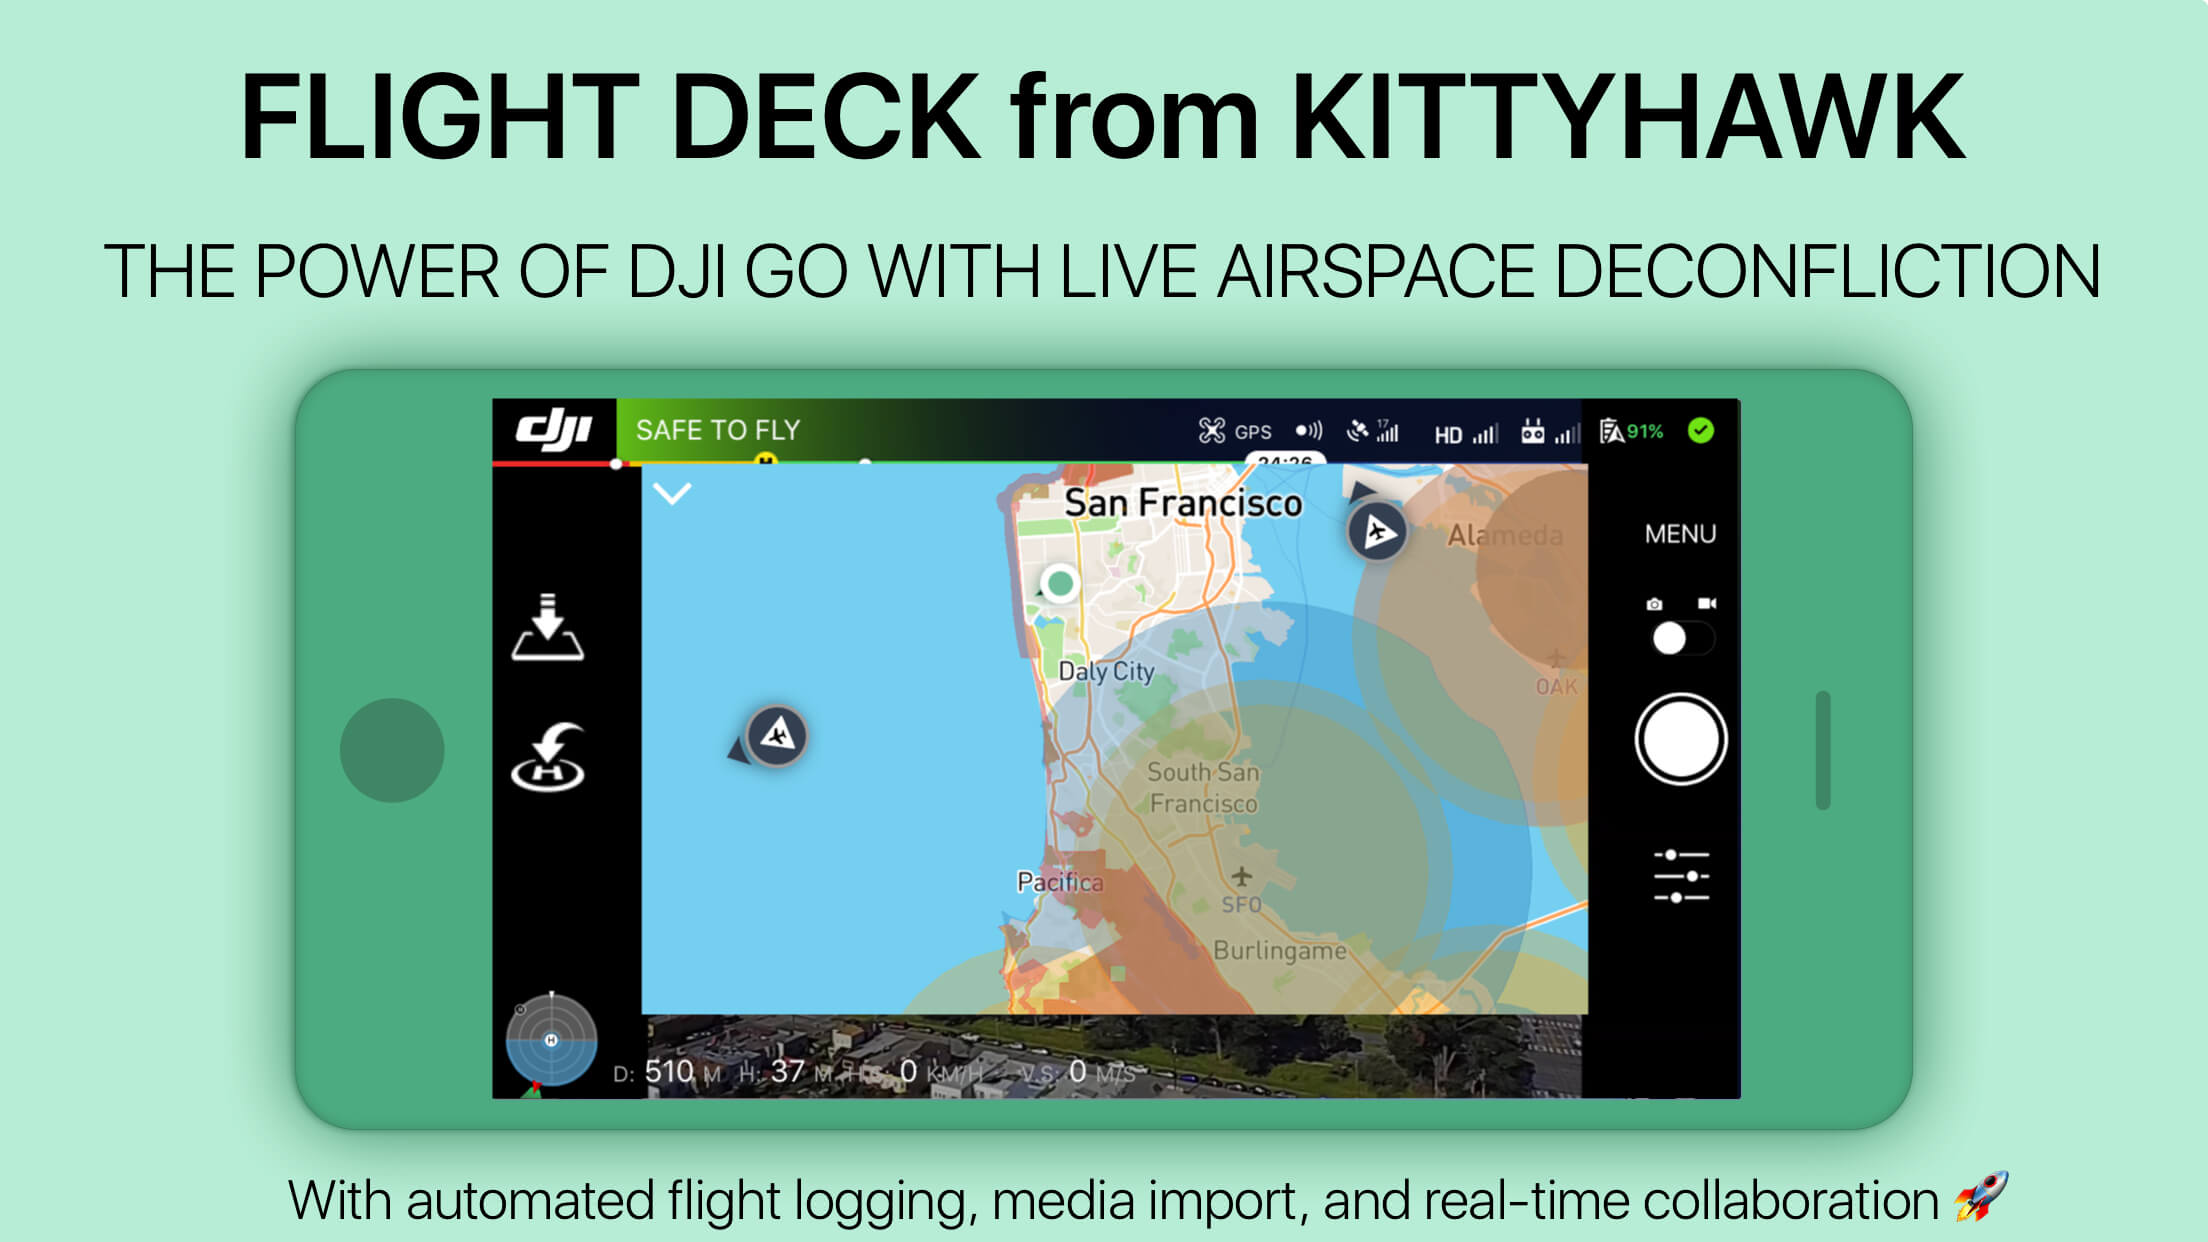 Kittyhawk.io Launches Flight Deck for Real-Time Drone Operations